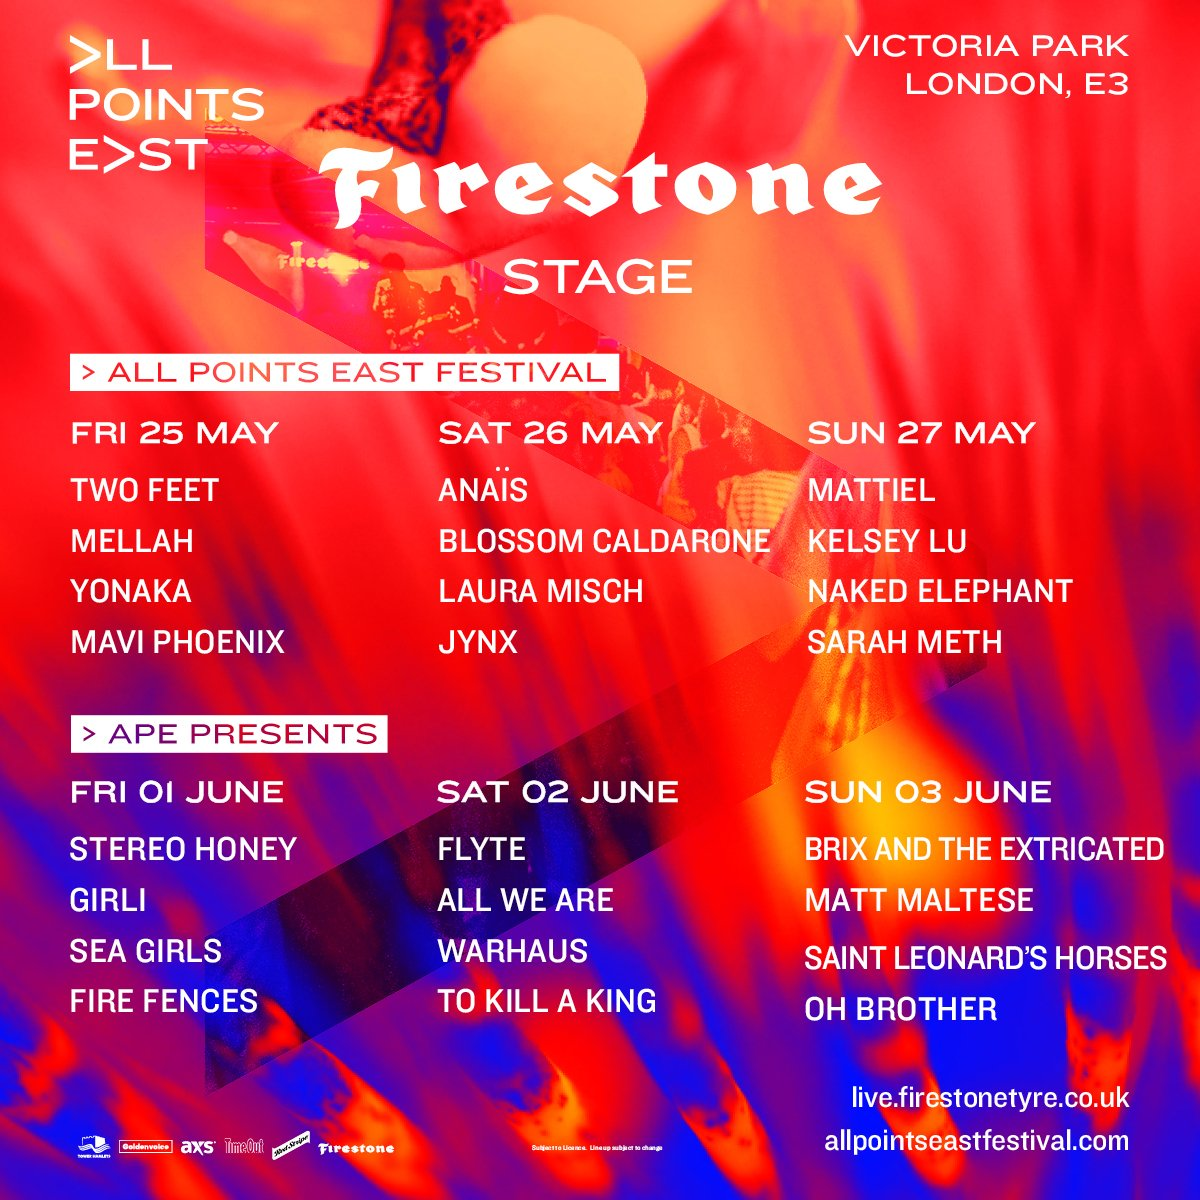 Firestone Hours Sunday >> All Points East On Twitter Presenting Firestone Stage